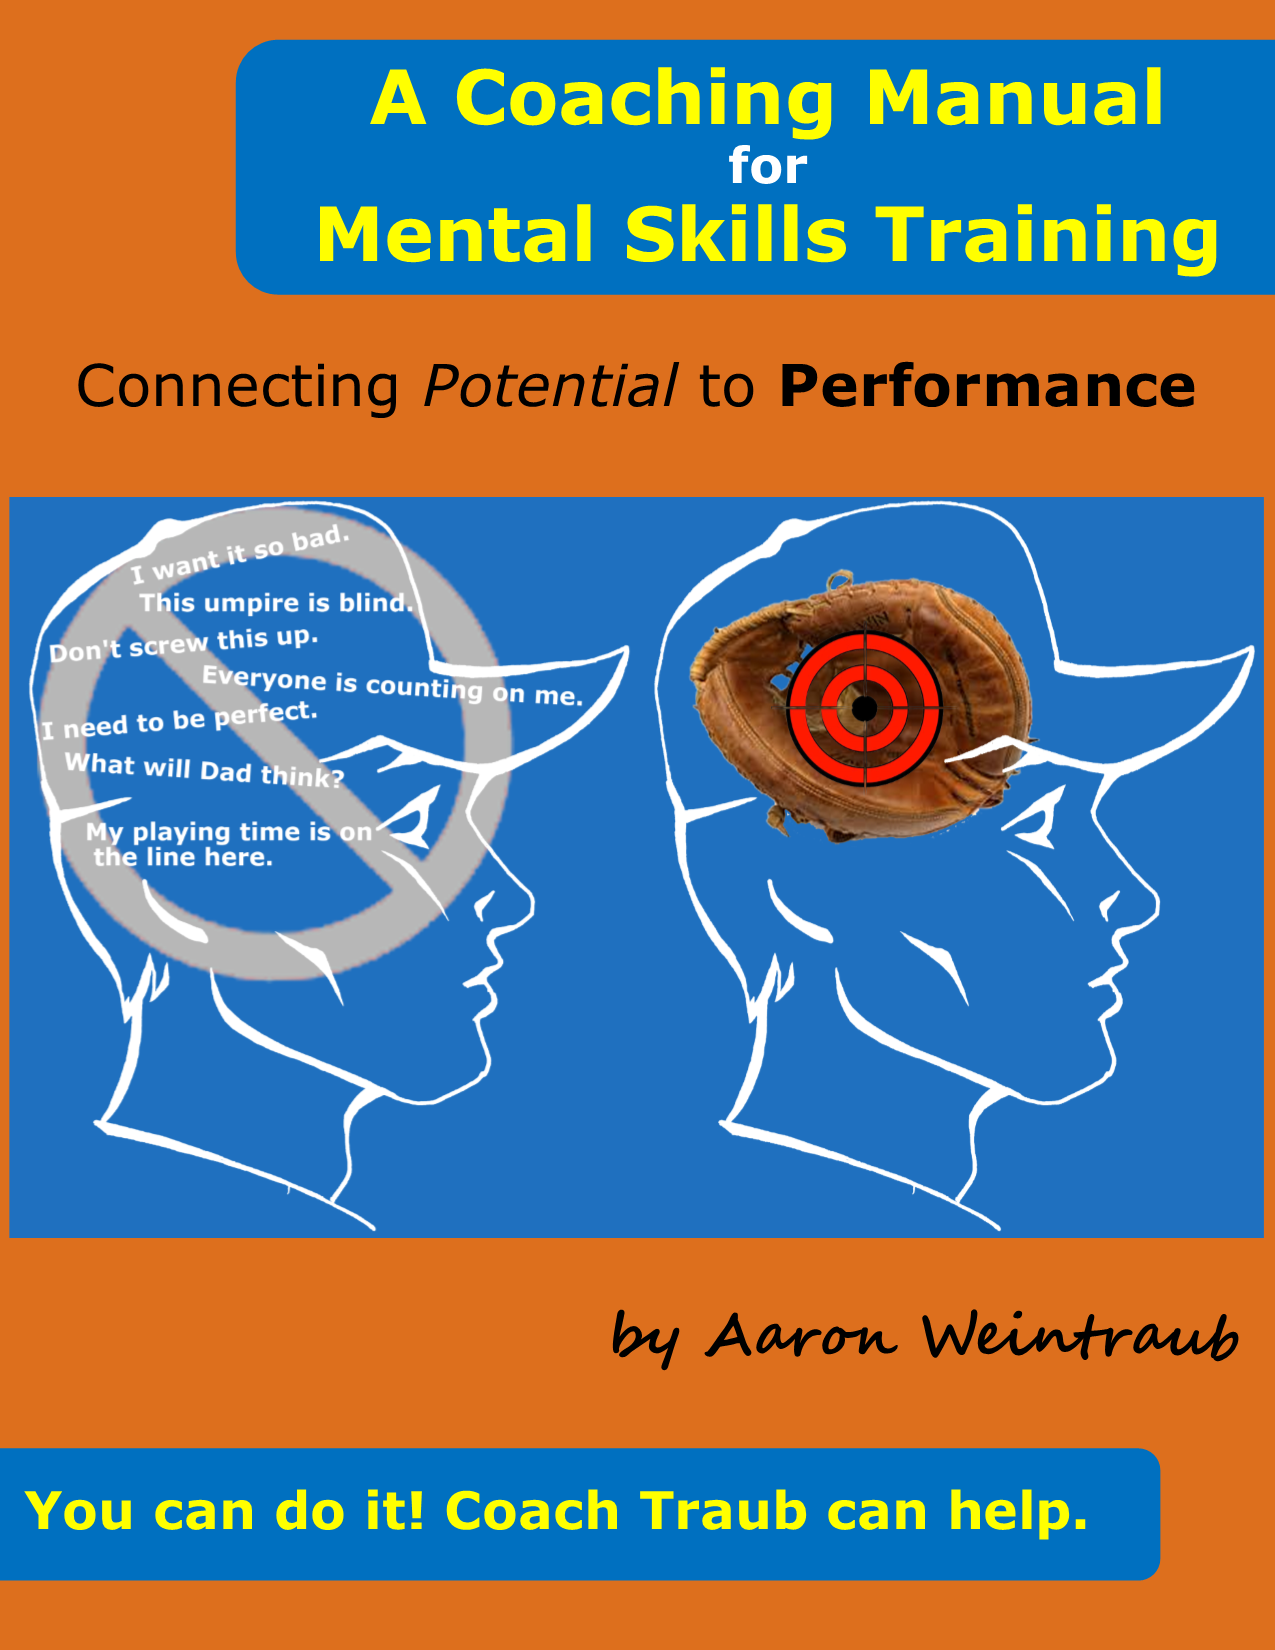 mental skill training log The fully reproducible mental health worksheets, self-assessments, journaling activities, therapy worksheets, and educational handouts in each workbook help people engage in self-reflection, examine their thoughts and feelings, learn new skills, and explore ways to lead healthier, happier lives.